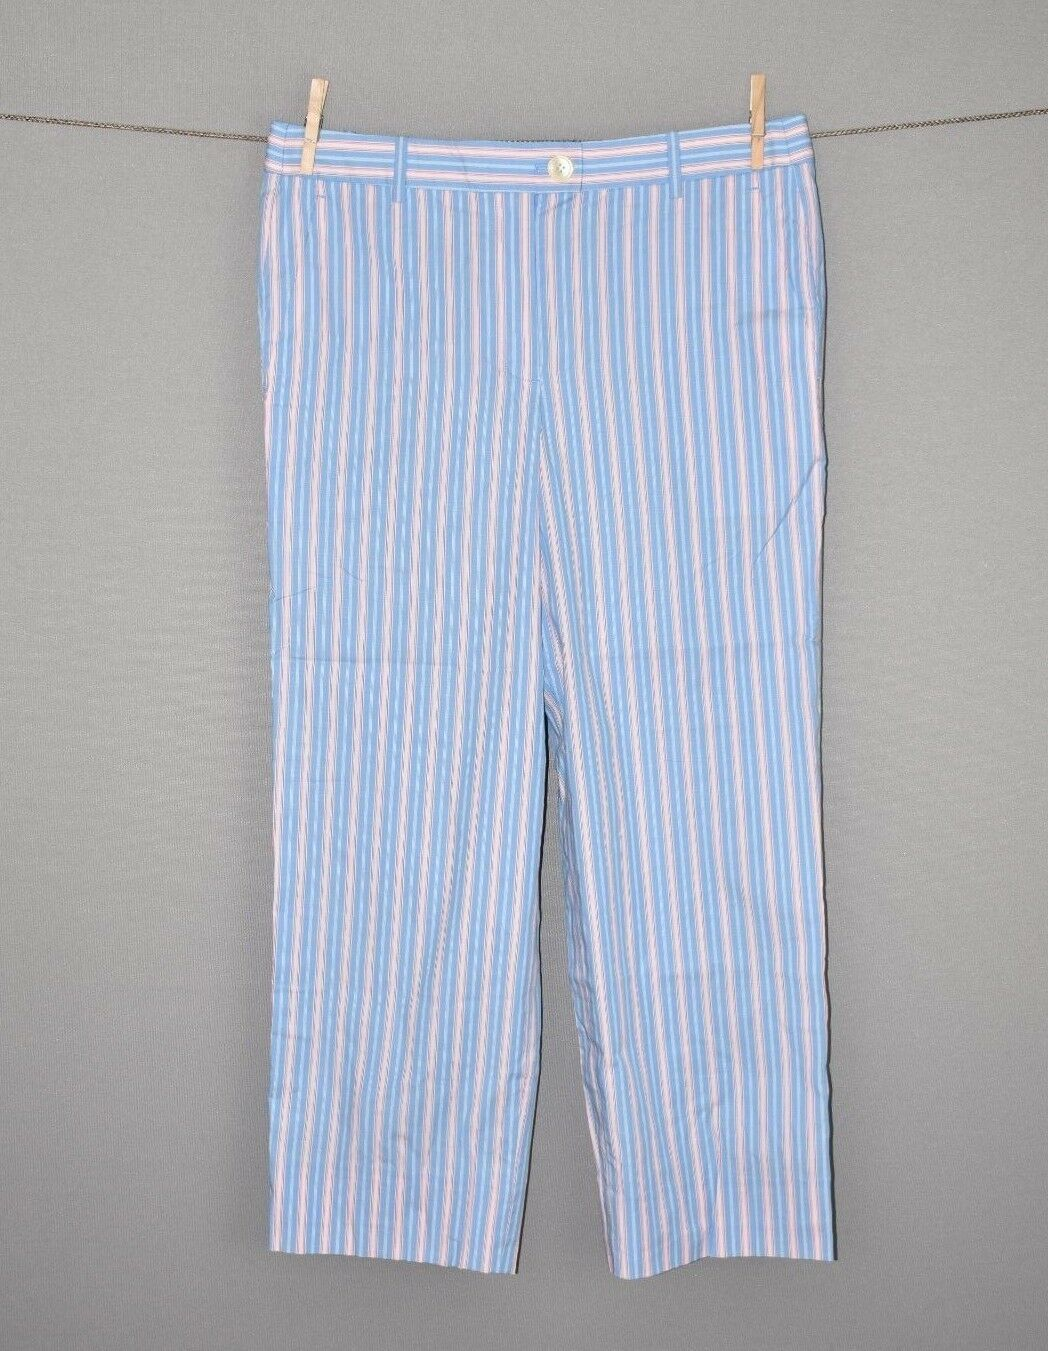 J.CREW NEW  179 bluee Shirting Stripe Cropped Slim Pant Size 8